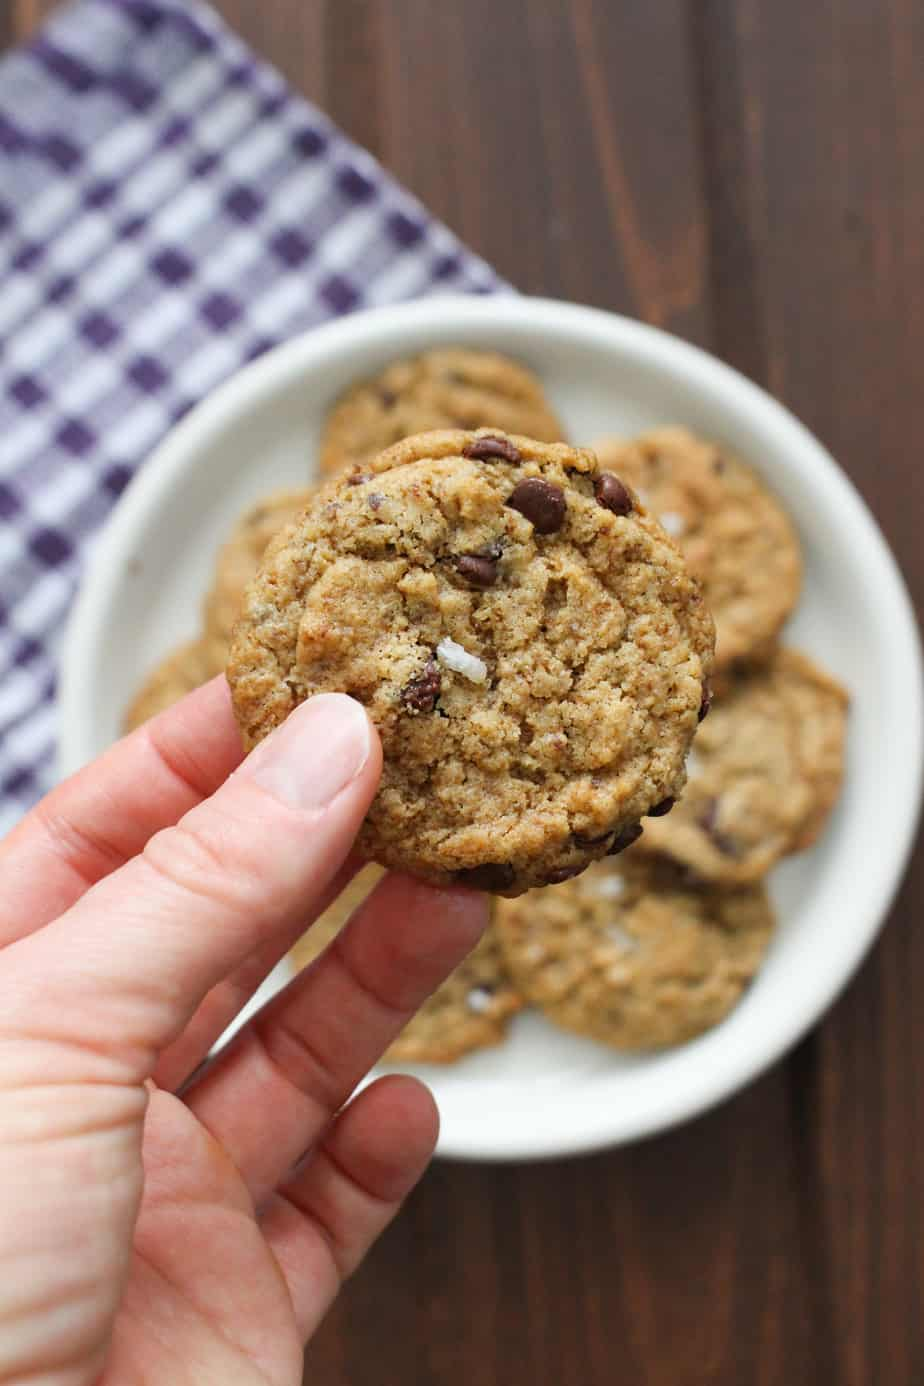 Easy 5 Ingredient Chocolate Chip Cookies | Frugal Nutrition #glutenfree #dairyfree